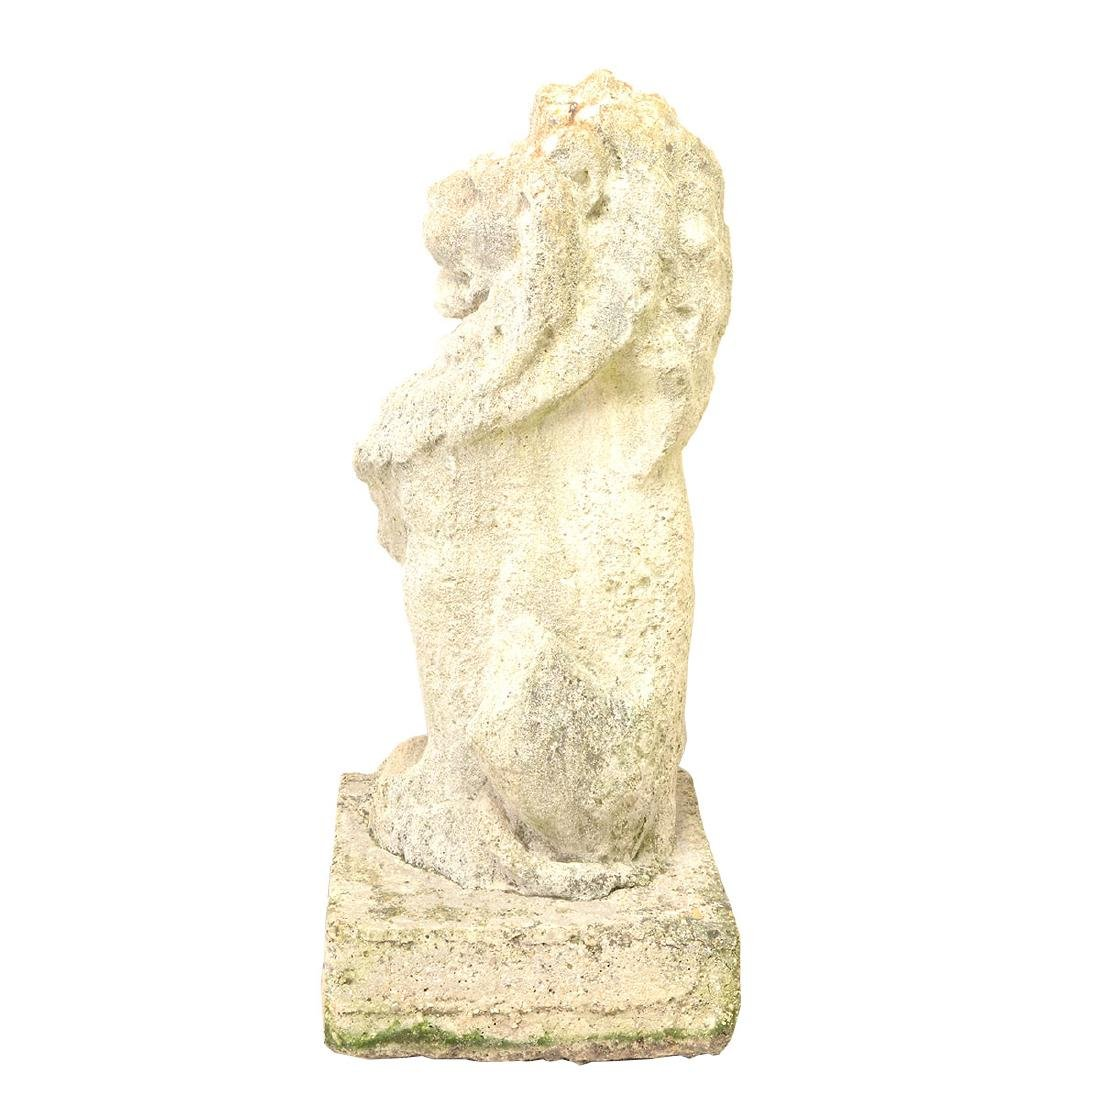 Pr English Baroque Style Stone Lions Guardant, after - 6